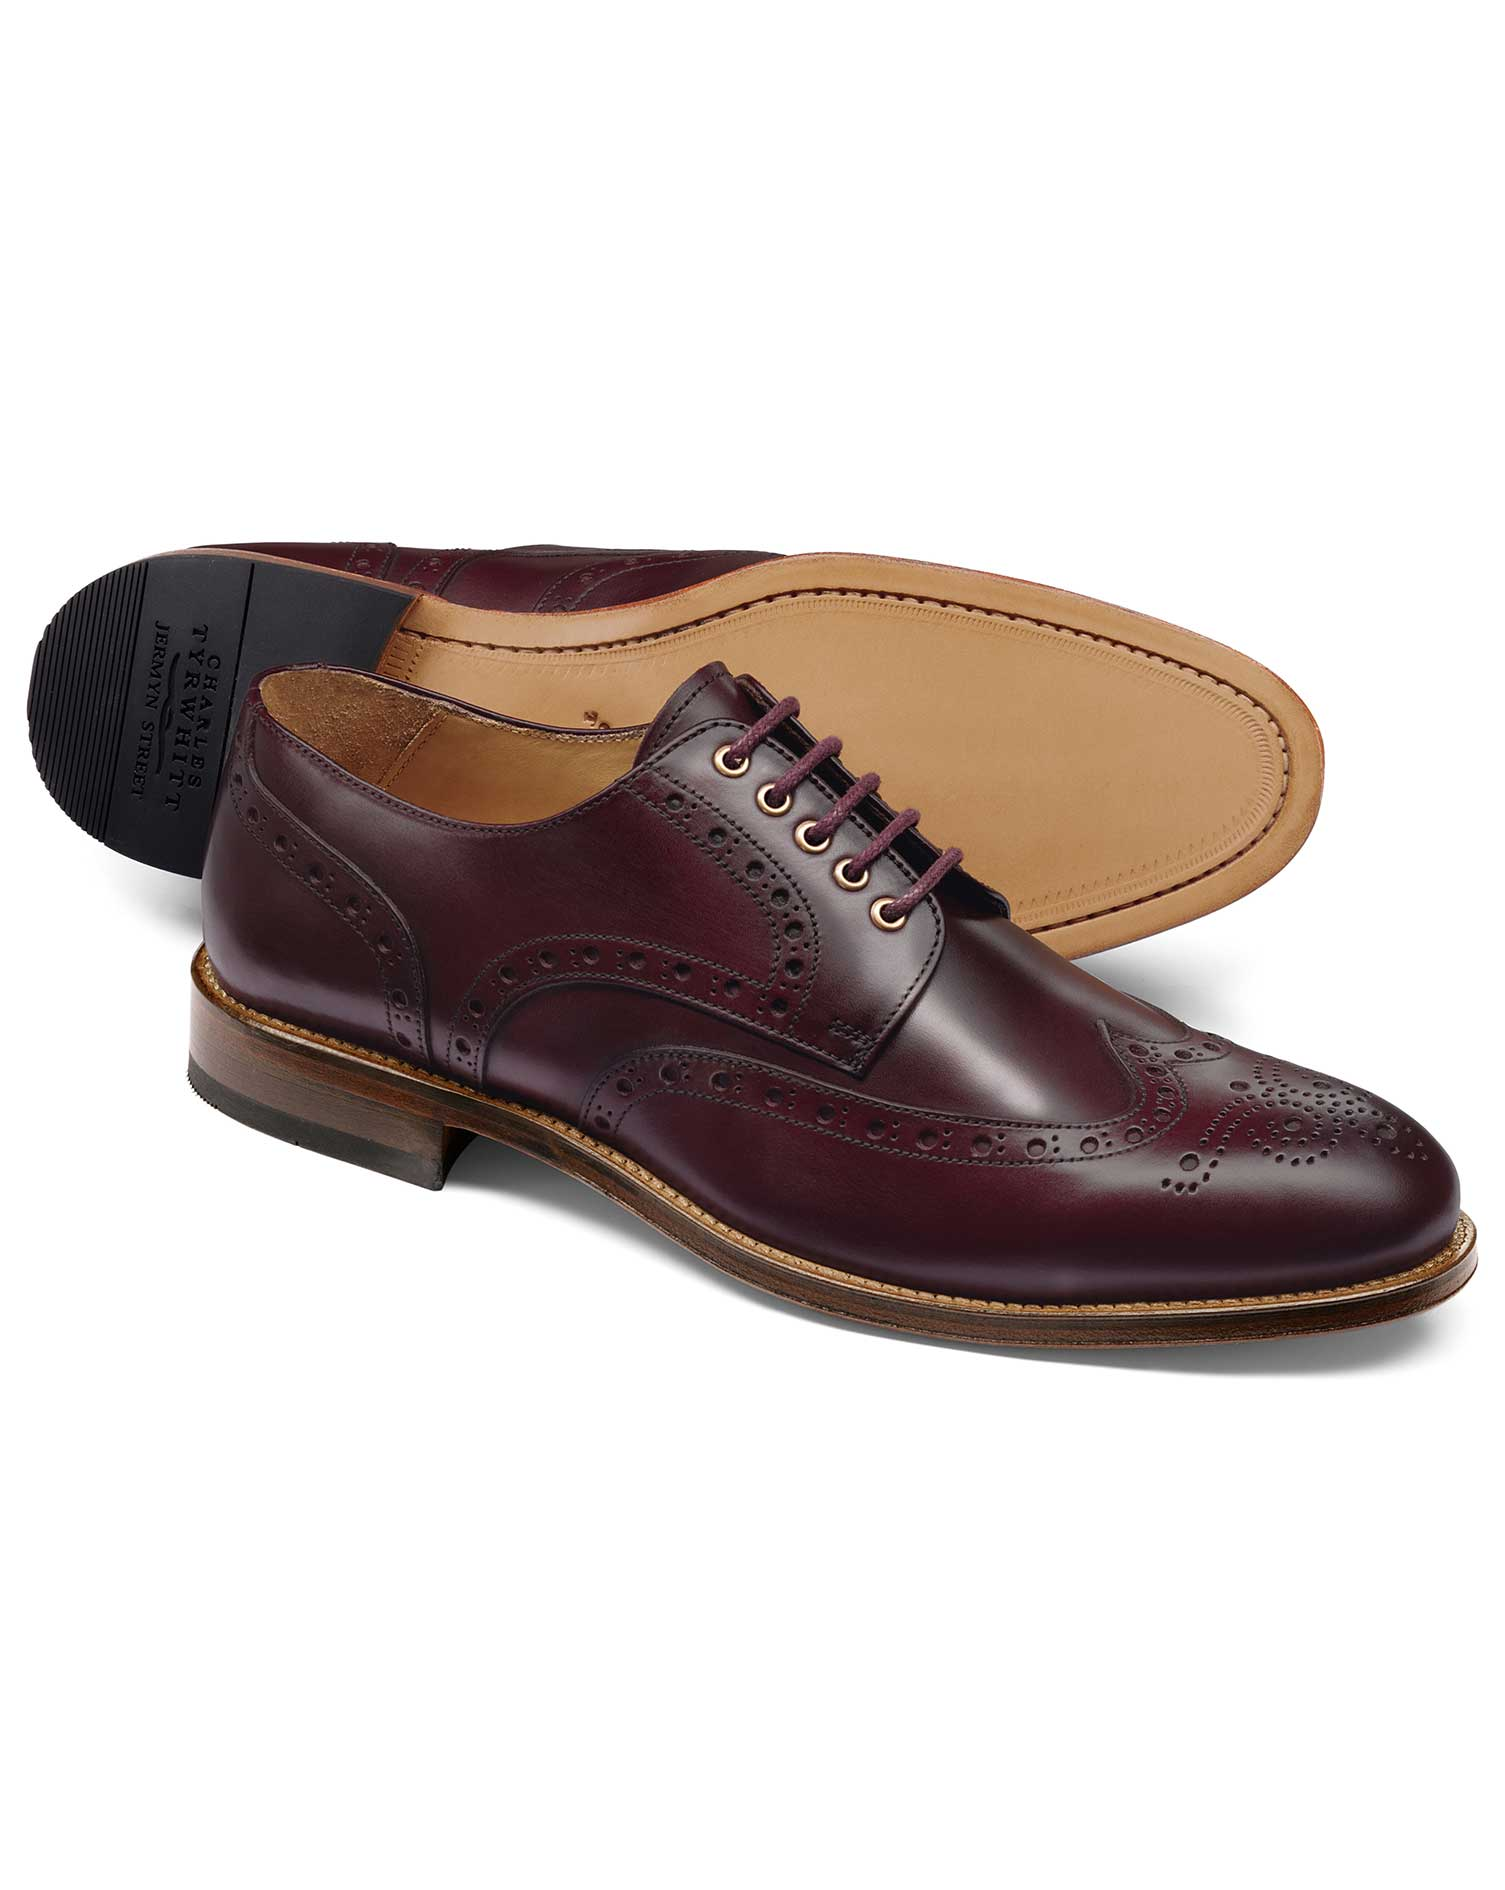 Oxblood Eyelet Derby Brogue Shoe Size 7.5 R by Charles Tyrwhitt